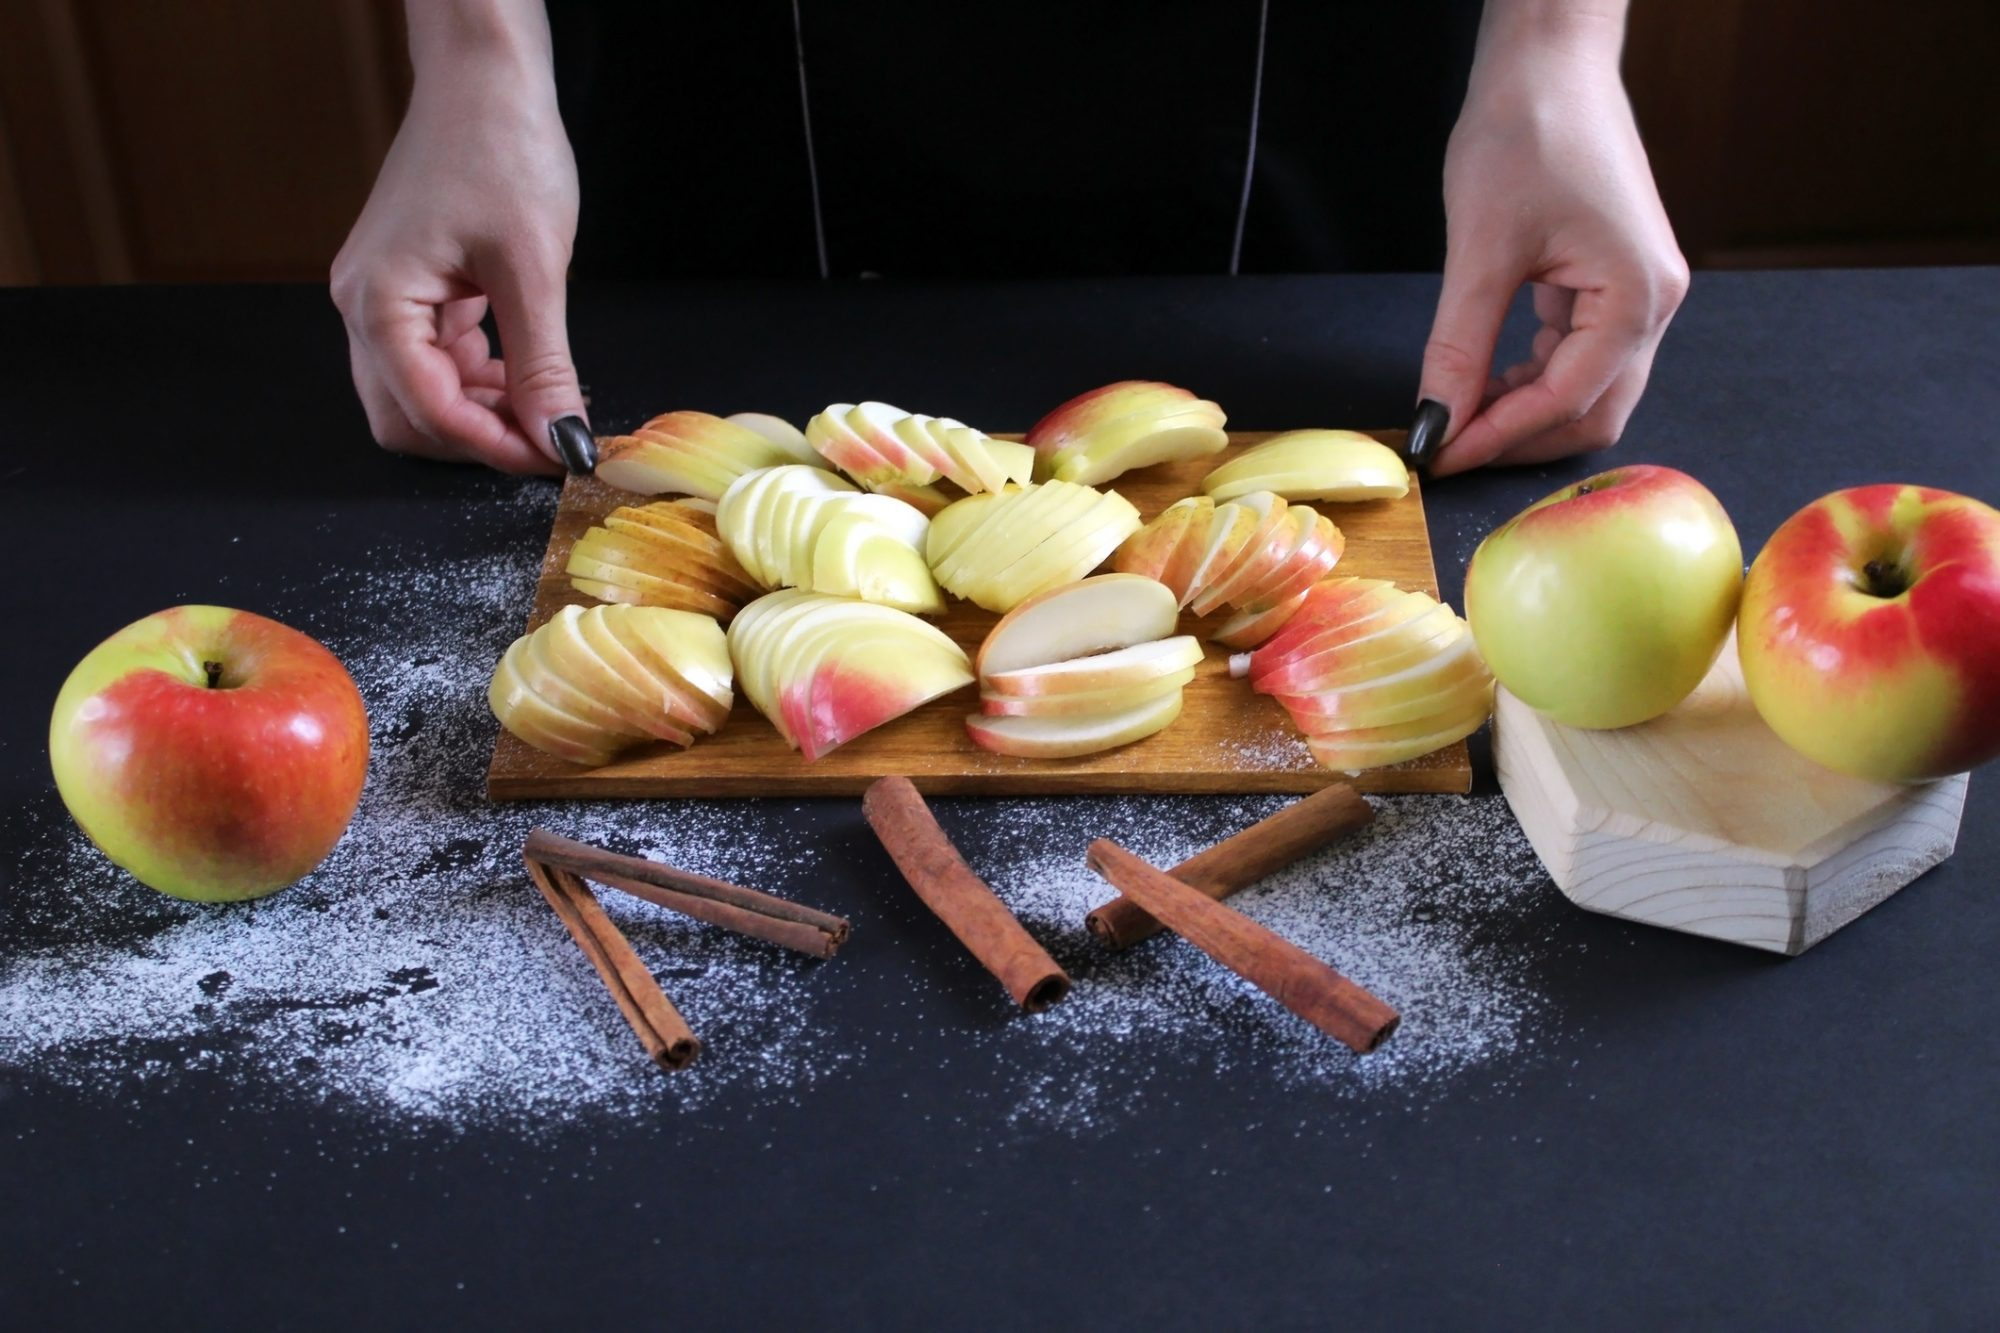 The Very Best Way to Freeze Apples